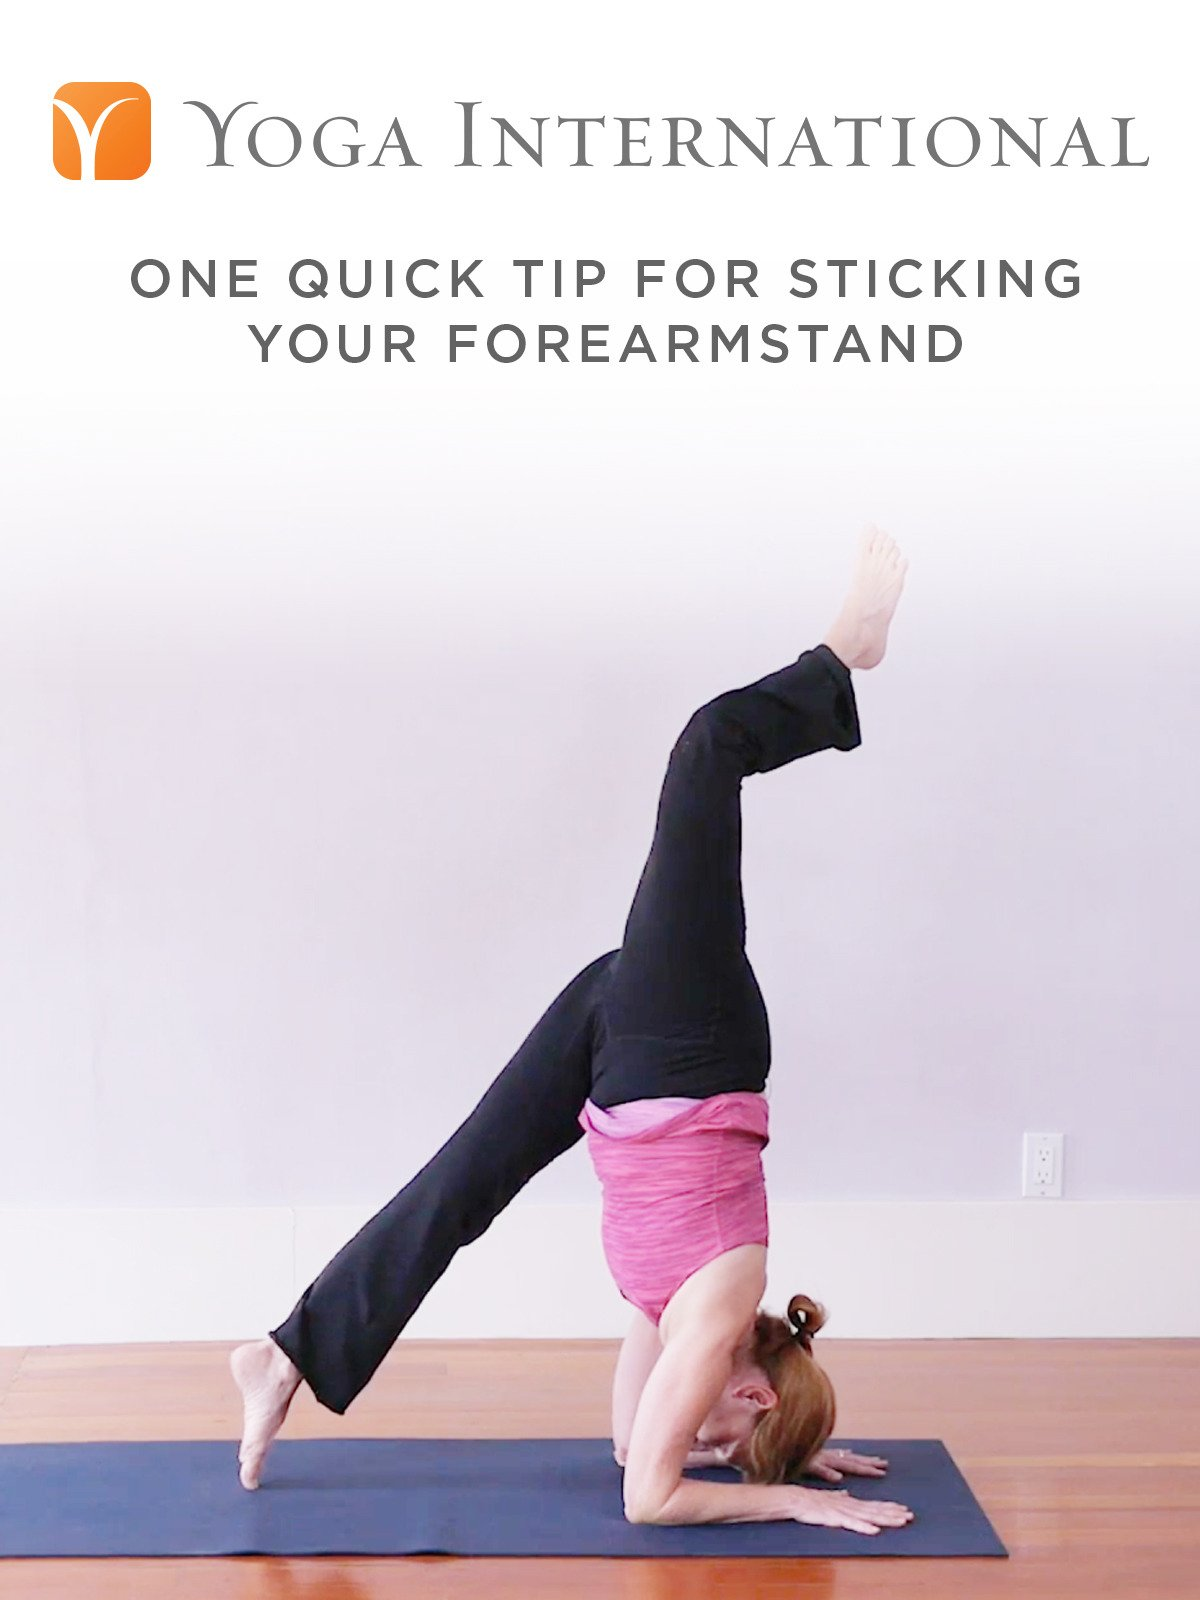 One Quick Tip for Sticking Your Forearmstand